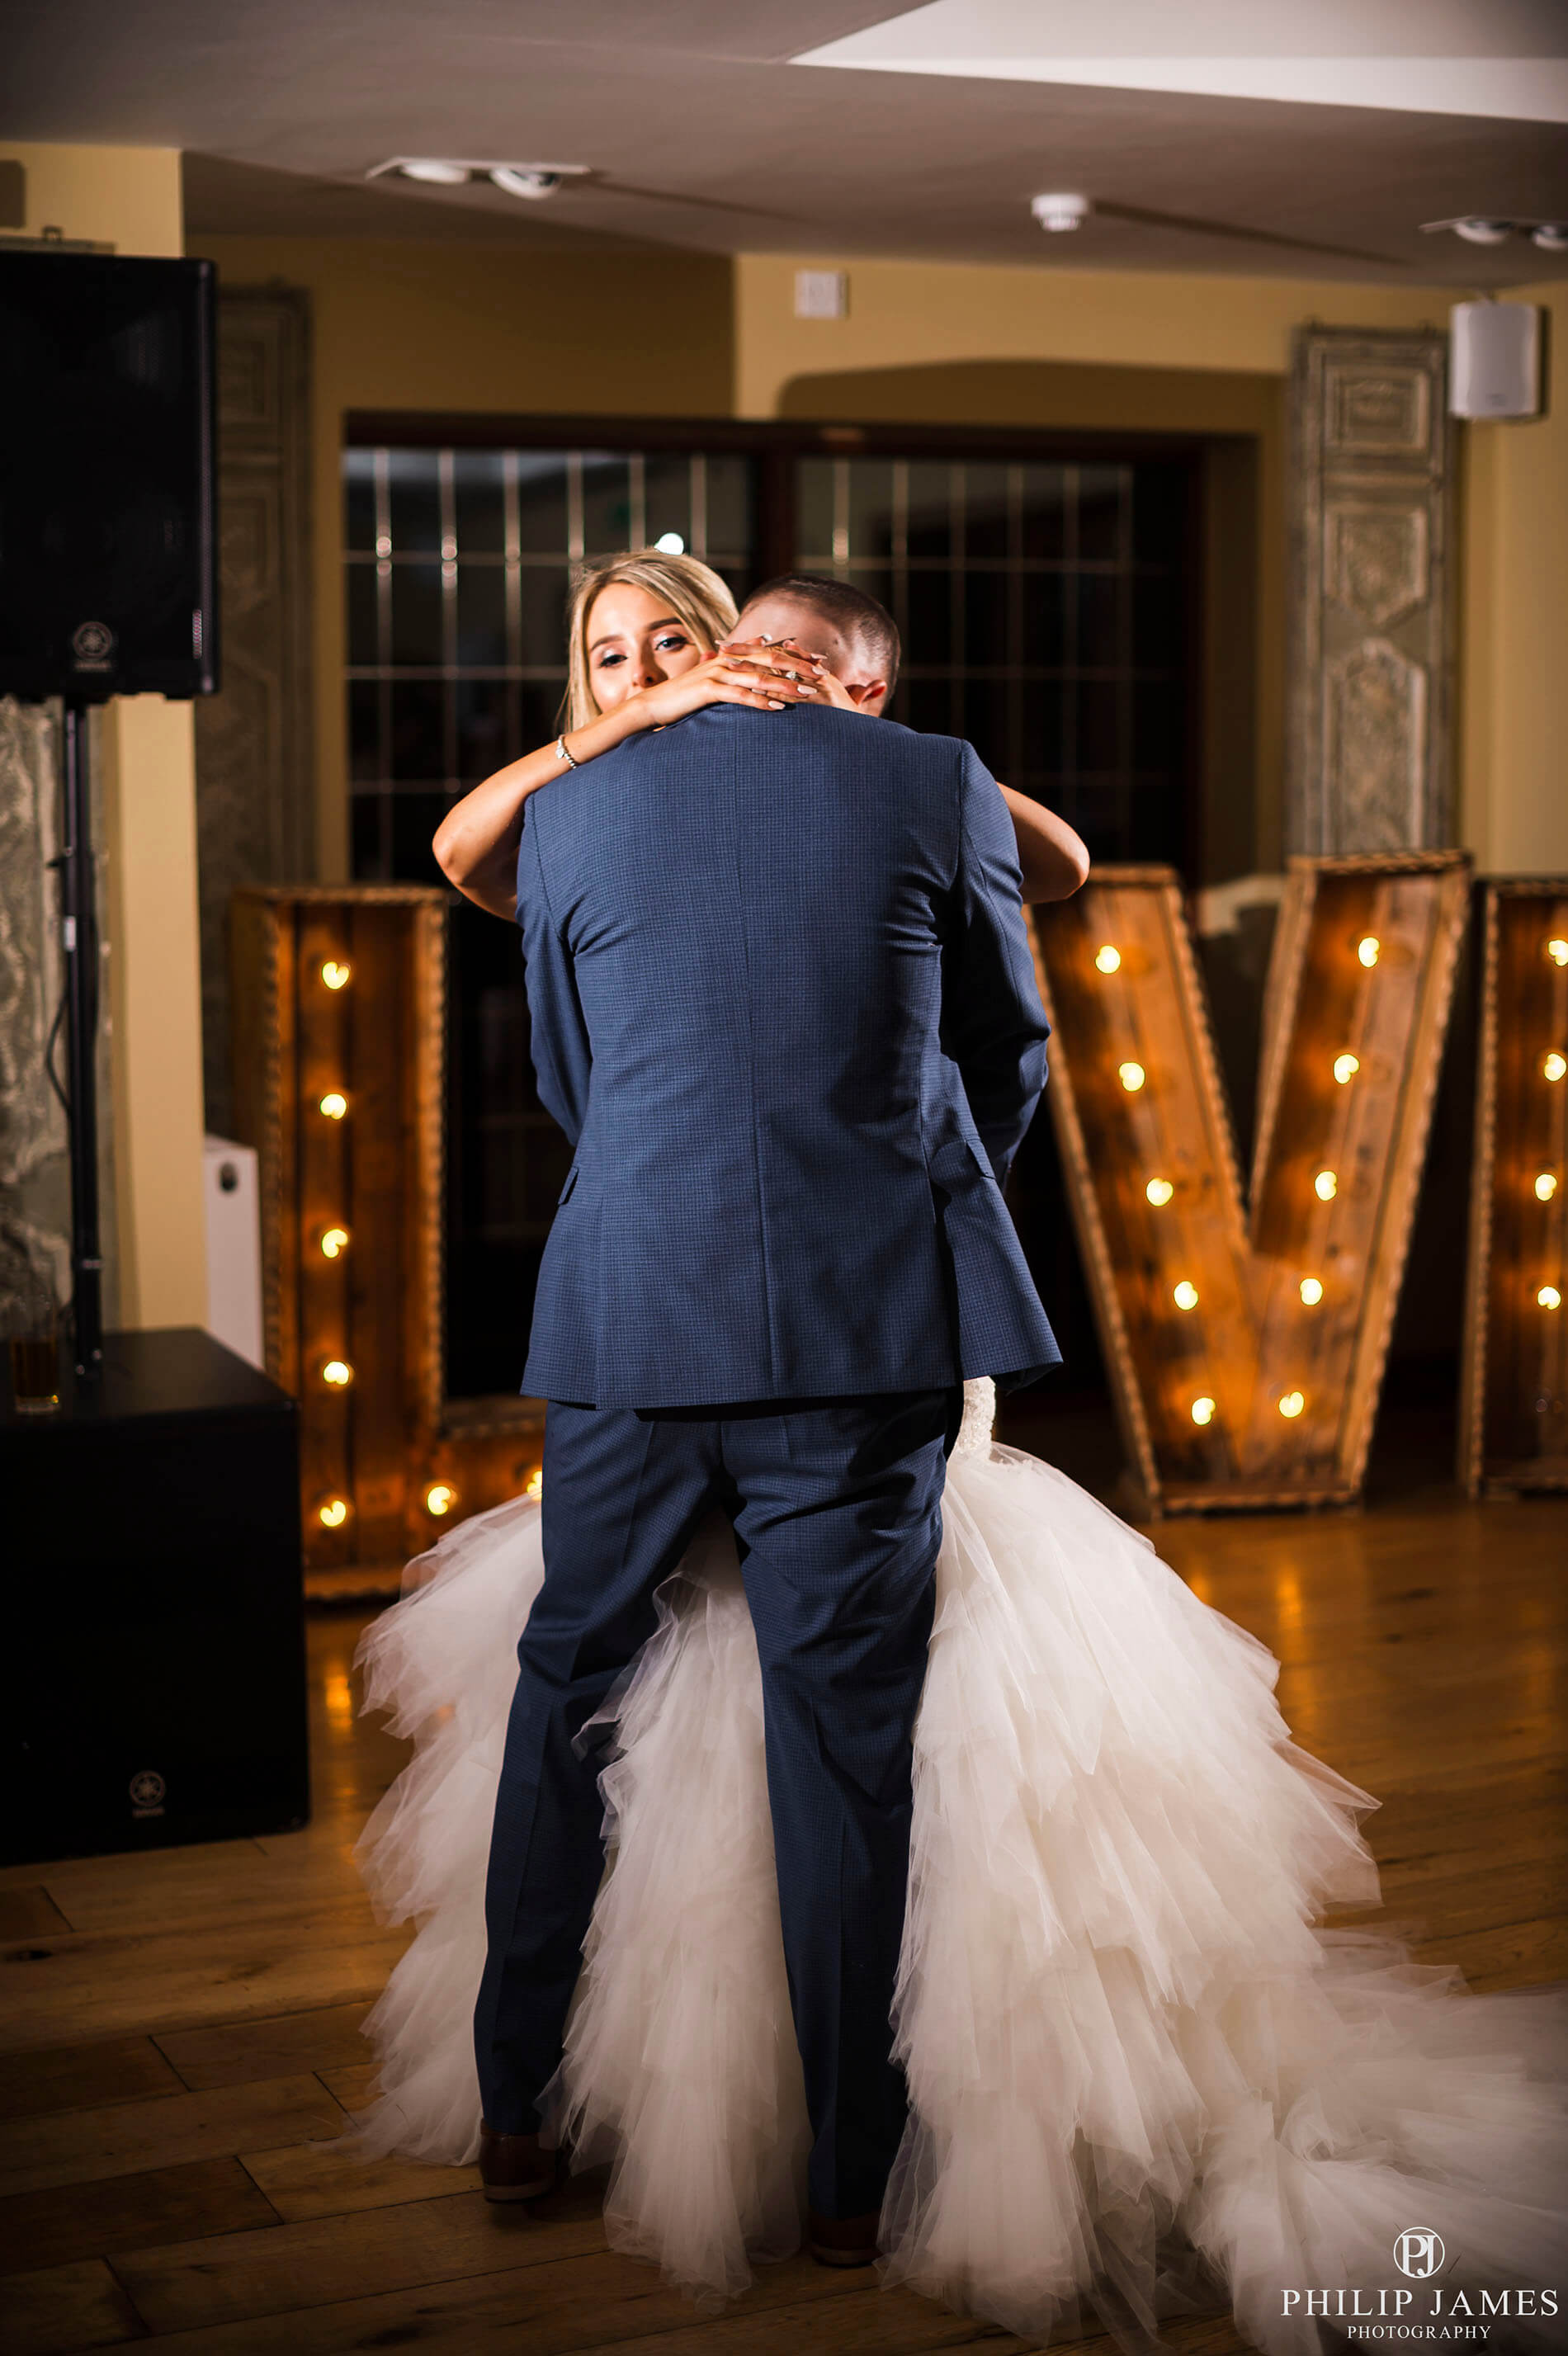 Nuthurst Grange Wedding Photography - Philip James covers Birmingham, The West Midlands, Solihull and Destination weddings. Wedding photography Birmingham is my passion